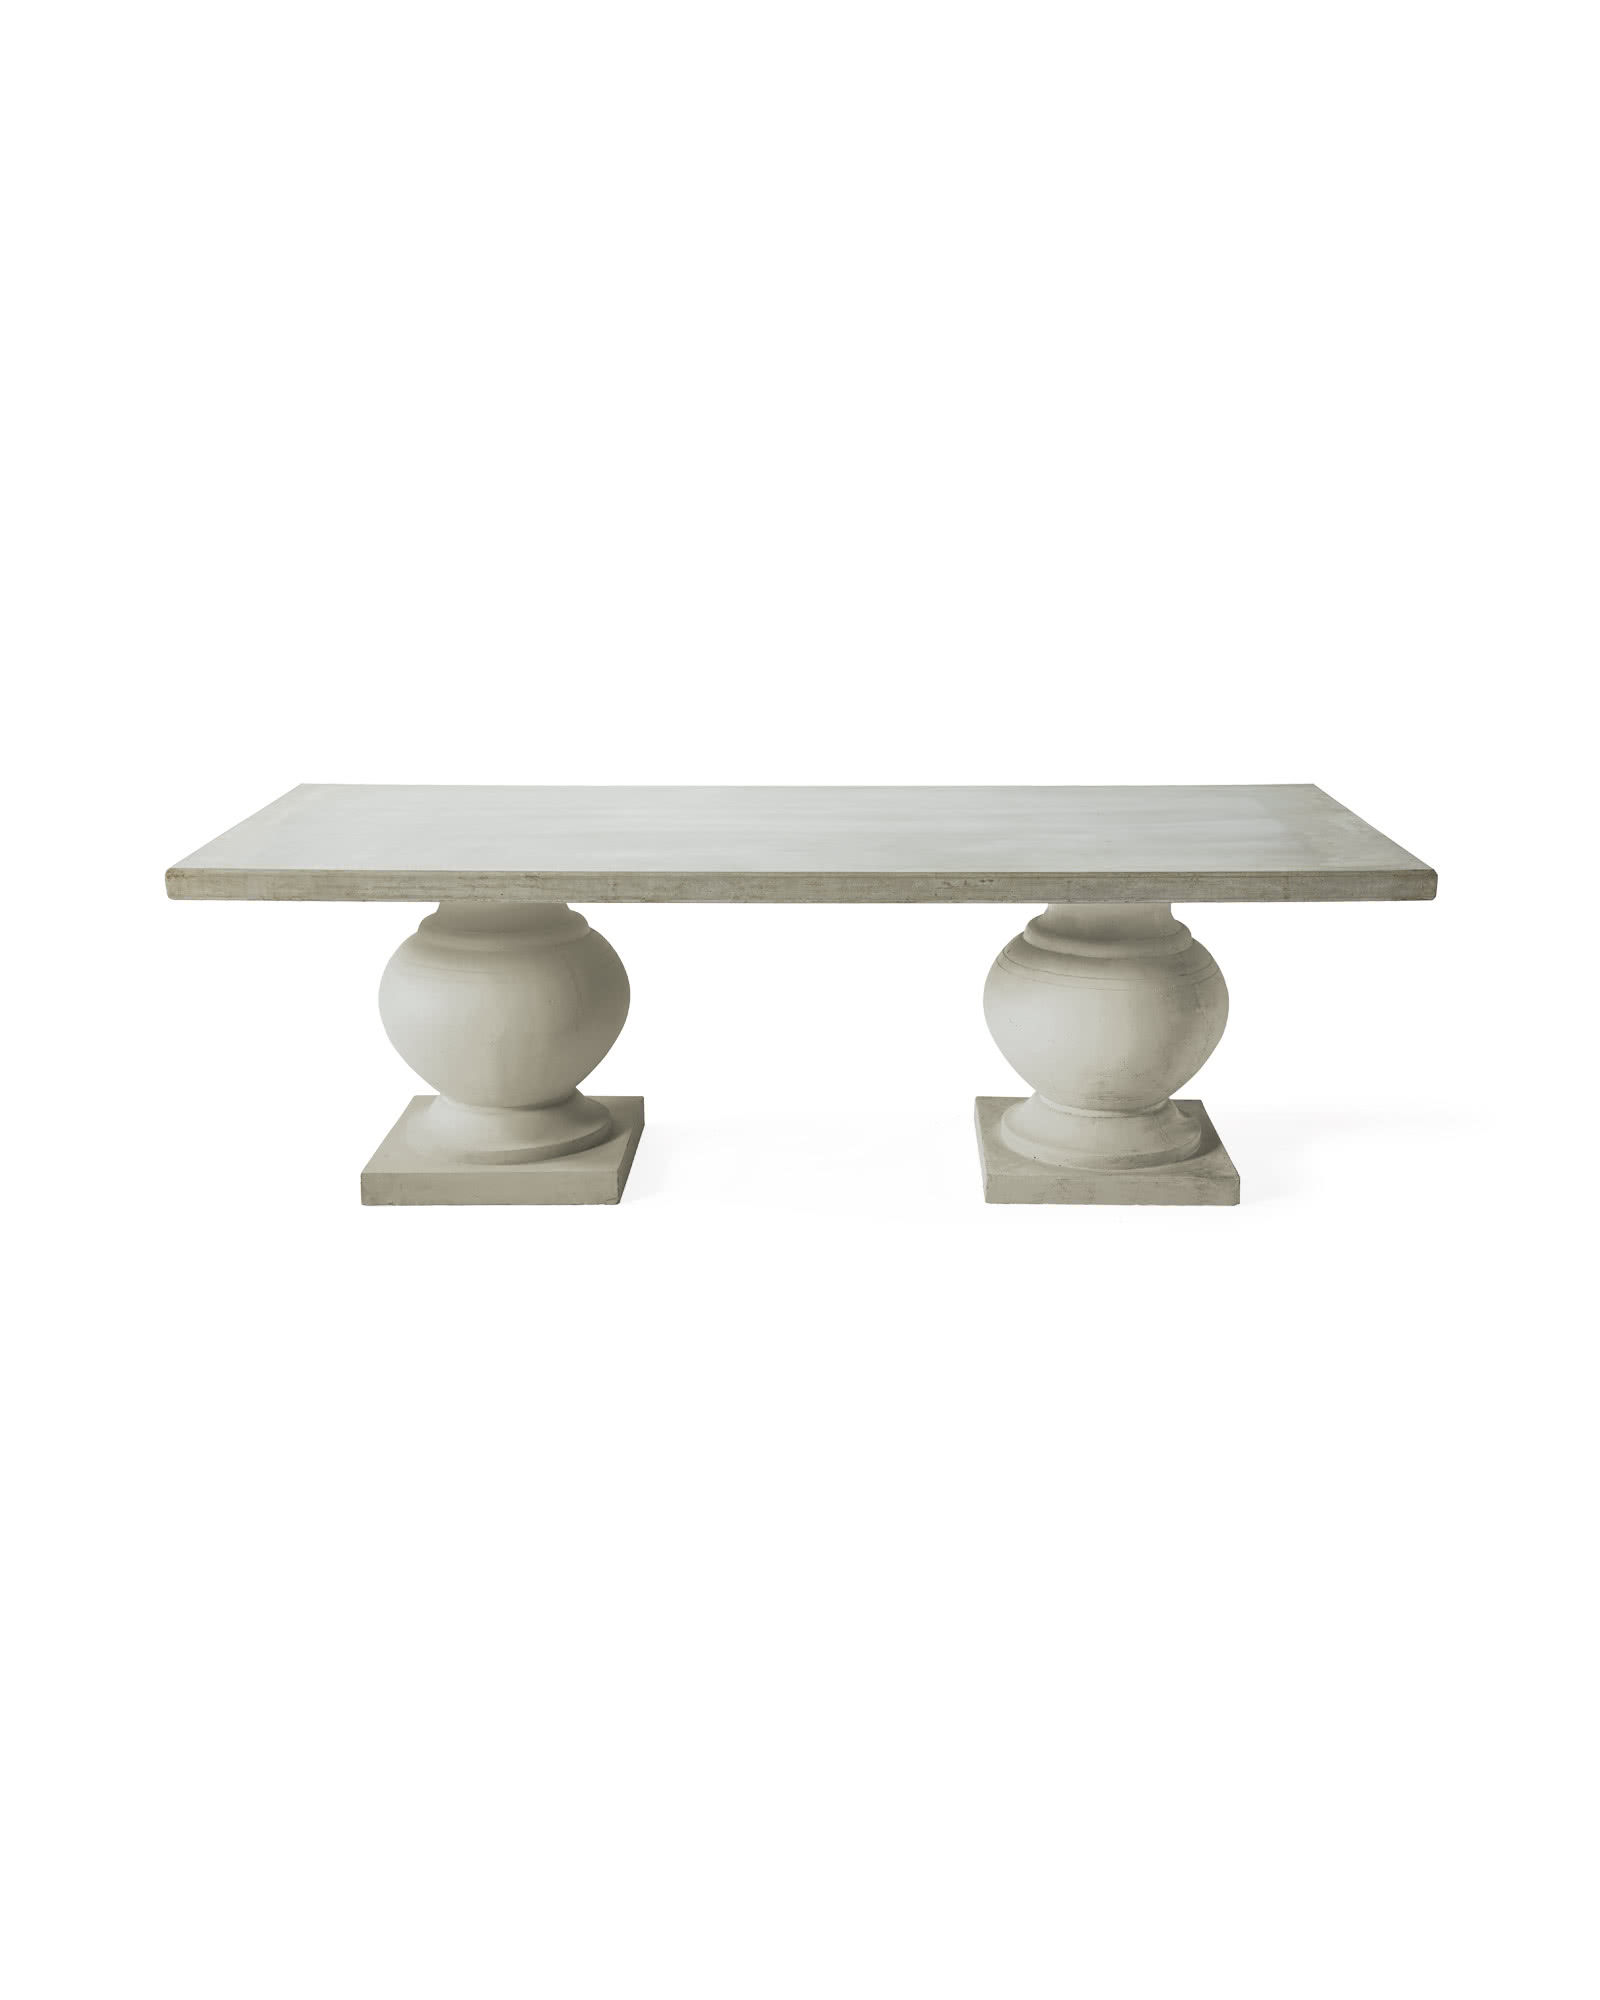 Cover Terrace: Terrace Rectangular Dining Table Outdoor Cover